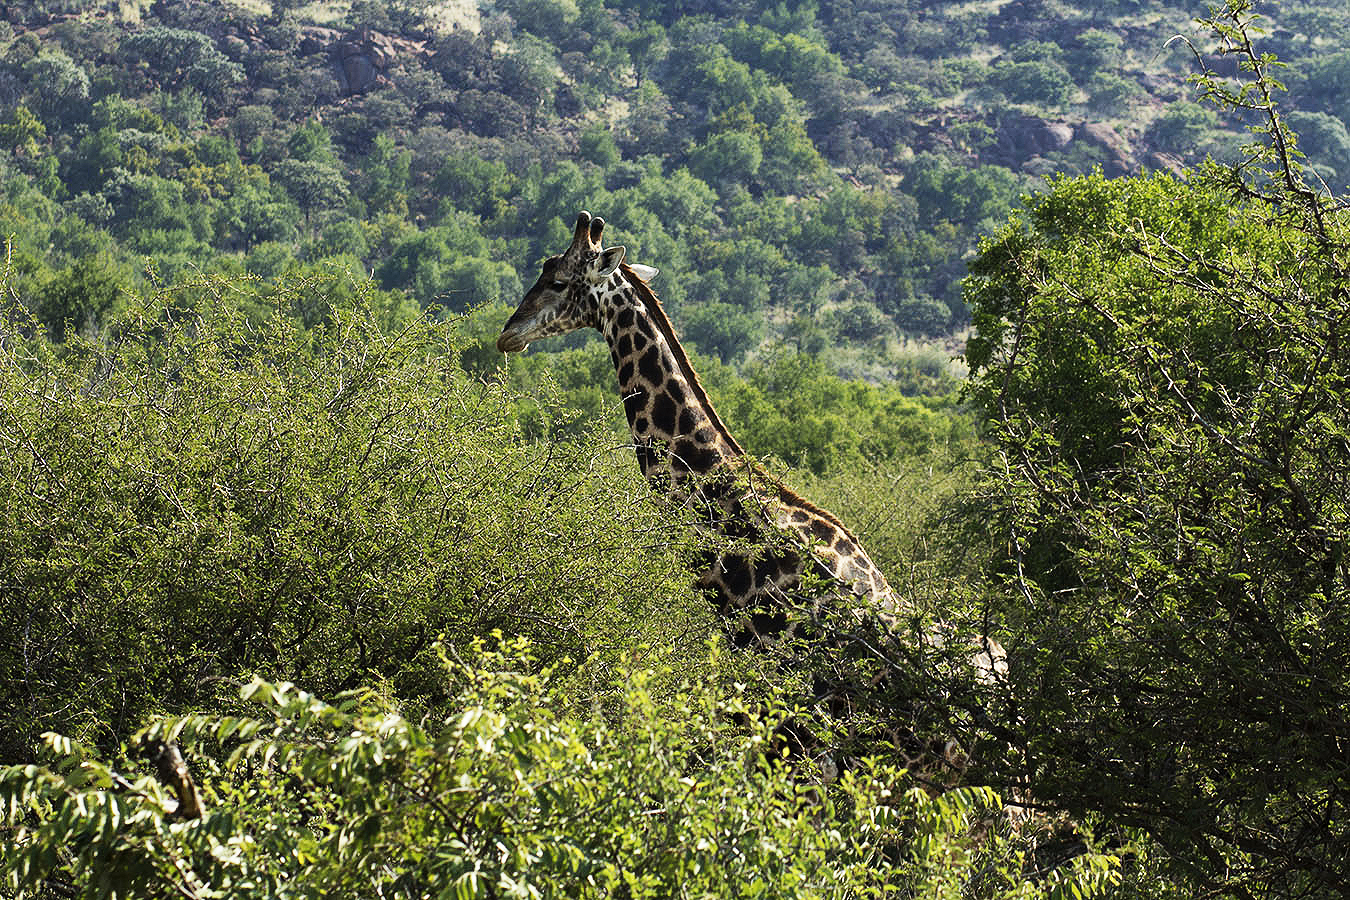 A giraffe at the Pilanesberg Game Reserve, near Johannesburg